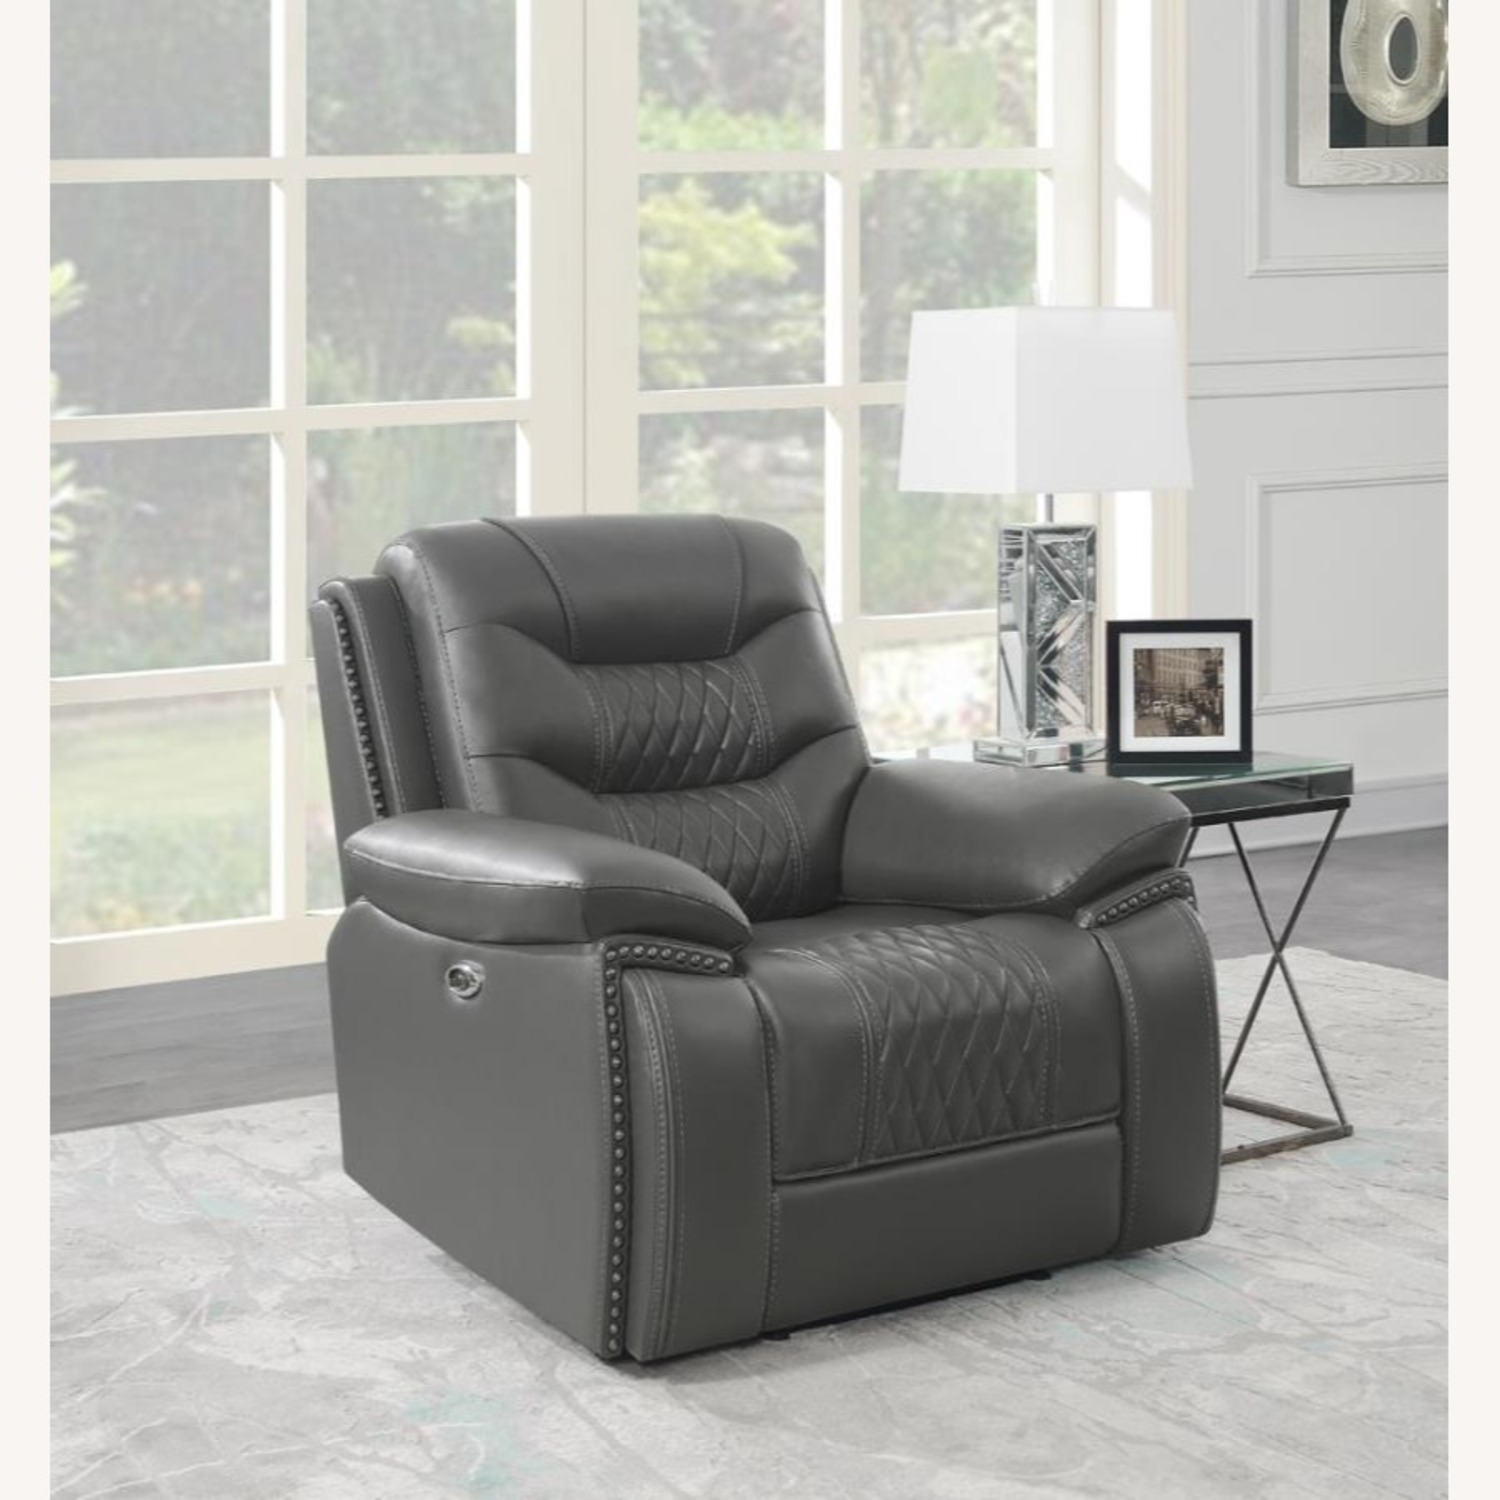 Power Recliner In Charcoal Performance Leatherette - image-5